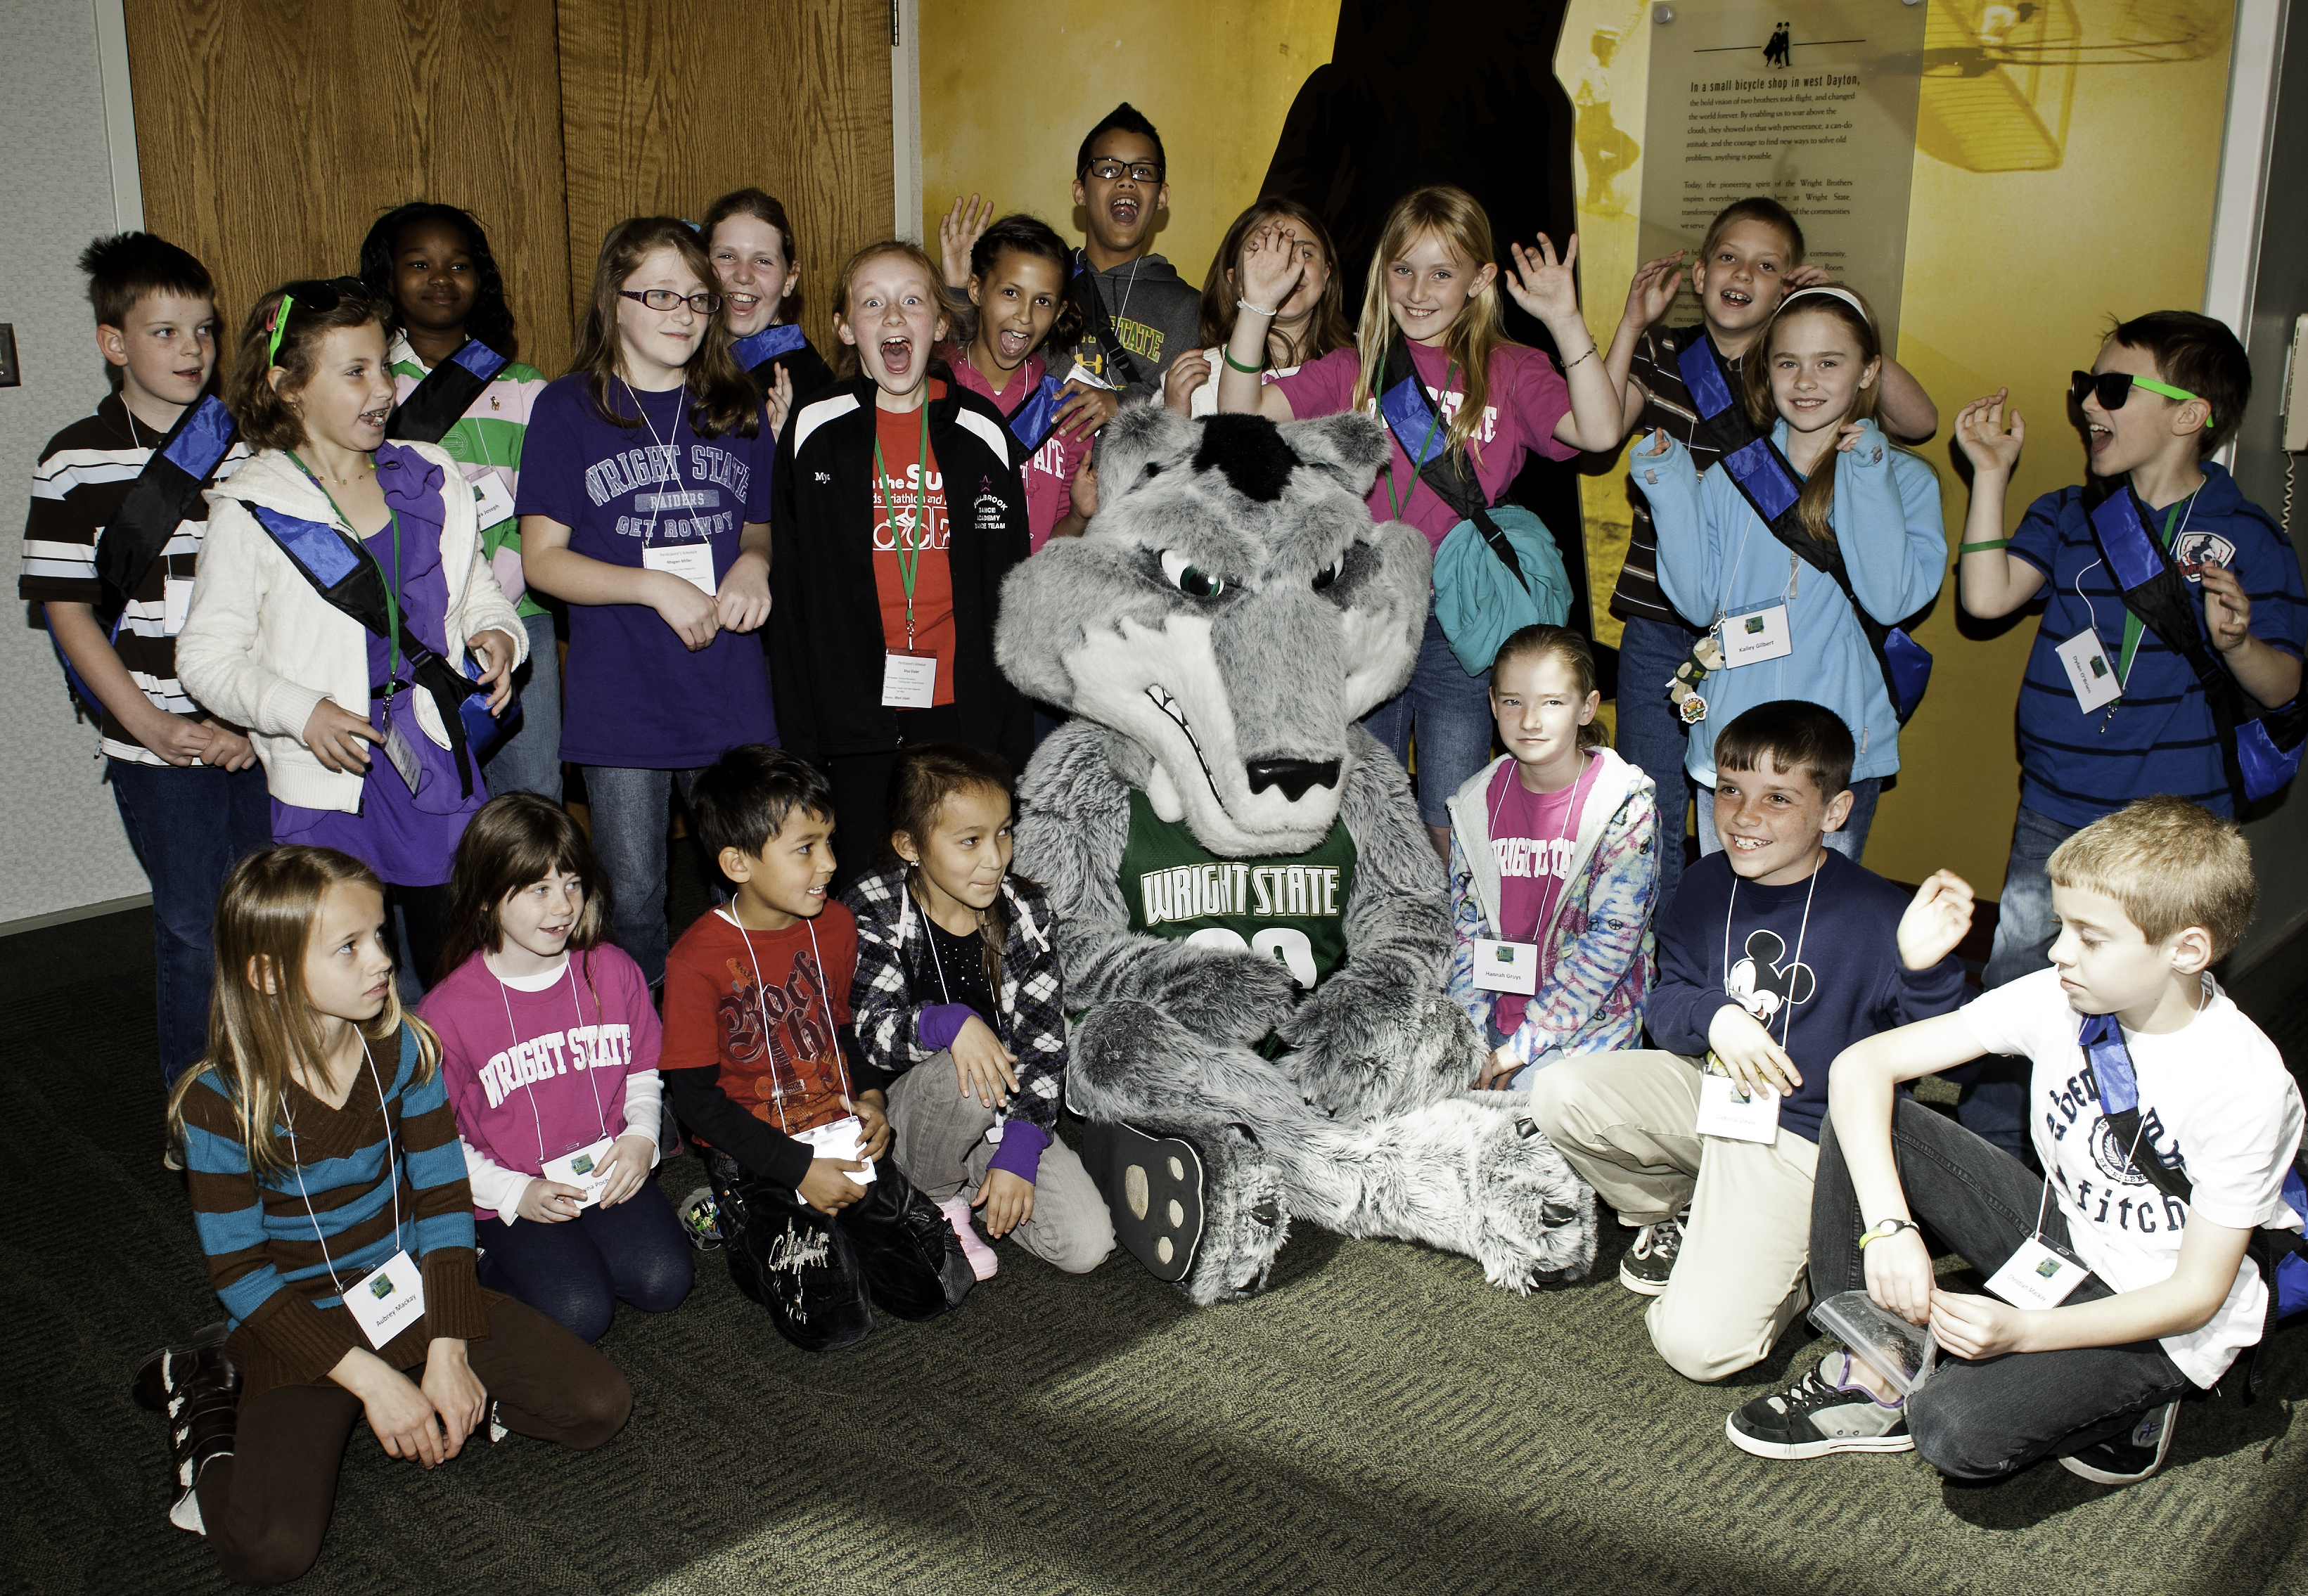 Photo of Rowdy Raider and dozens of kids who participated in the 2012 Take our Daughters and Sons to Work Day at Wright State.